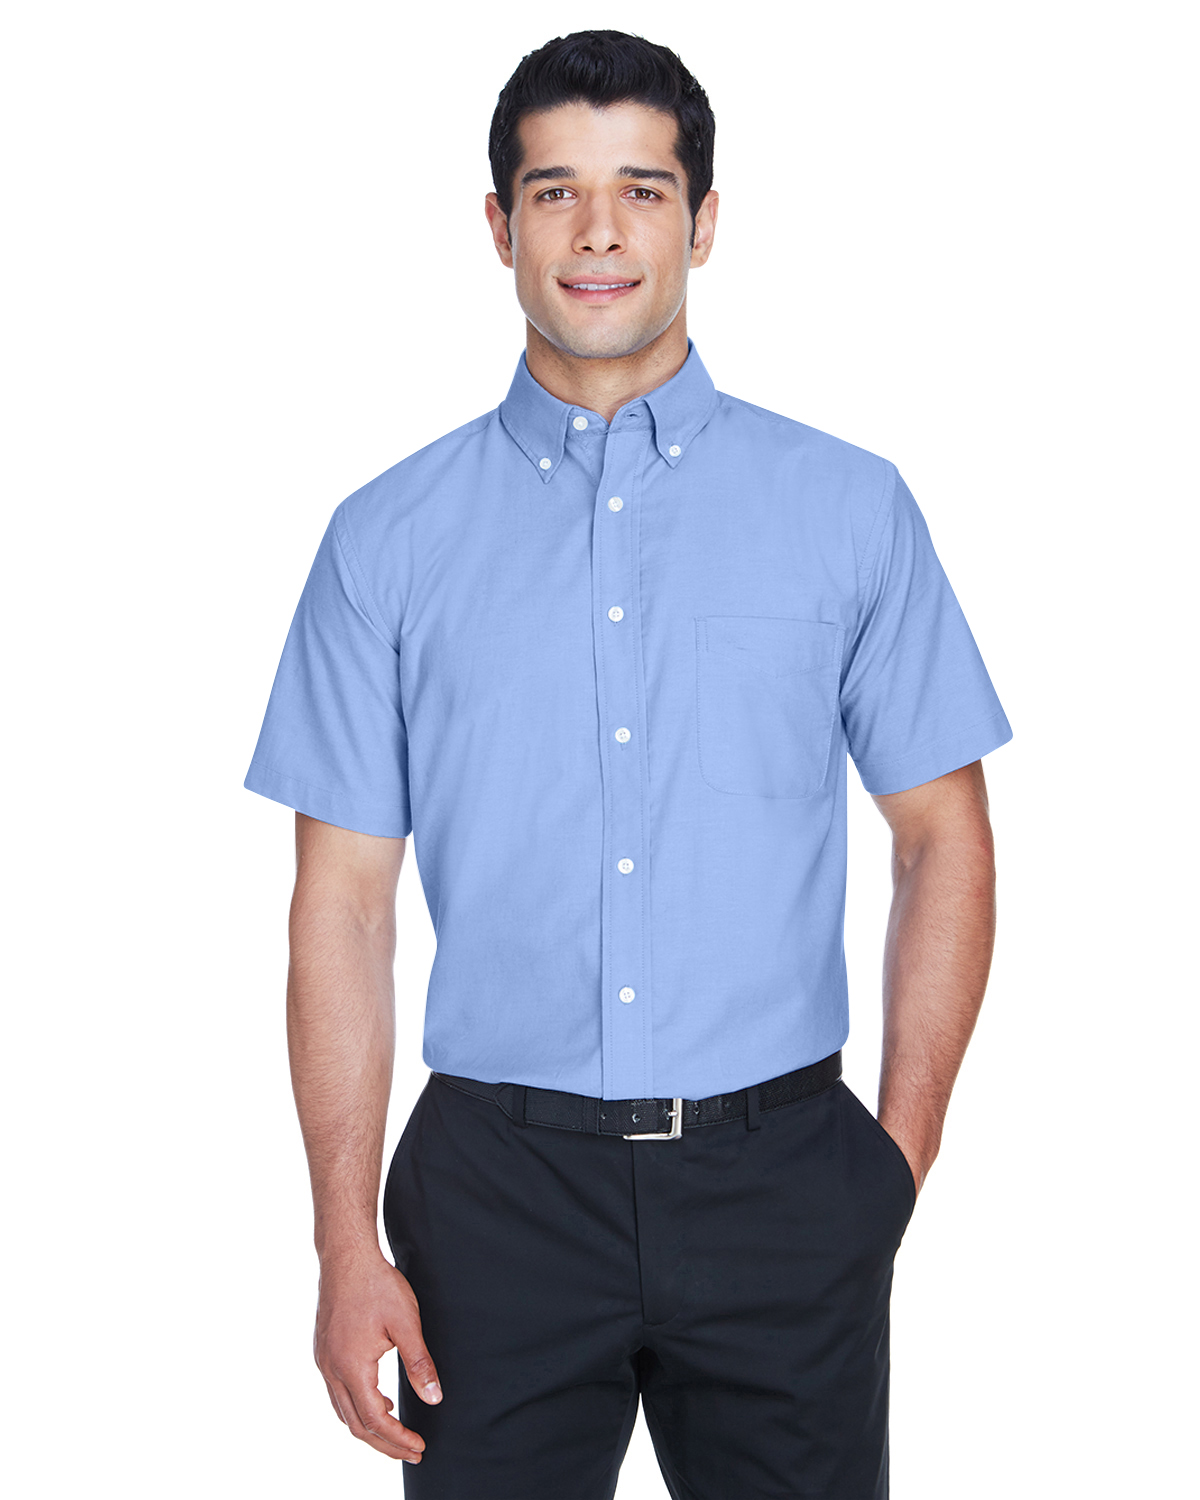 Harriton Men's Embroidered Short-Sleeve Oxford Shirt with Stain Release